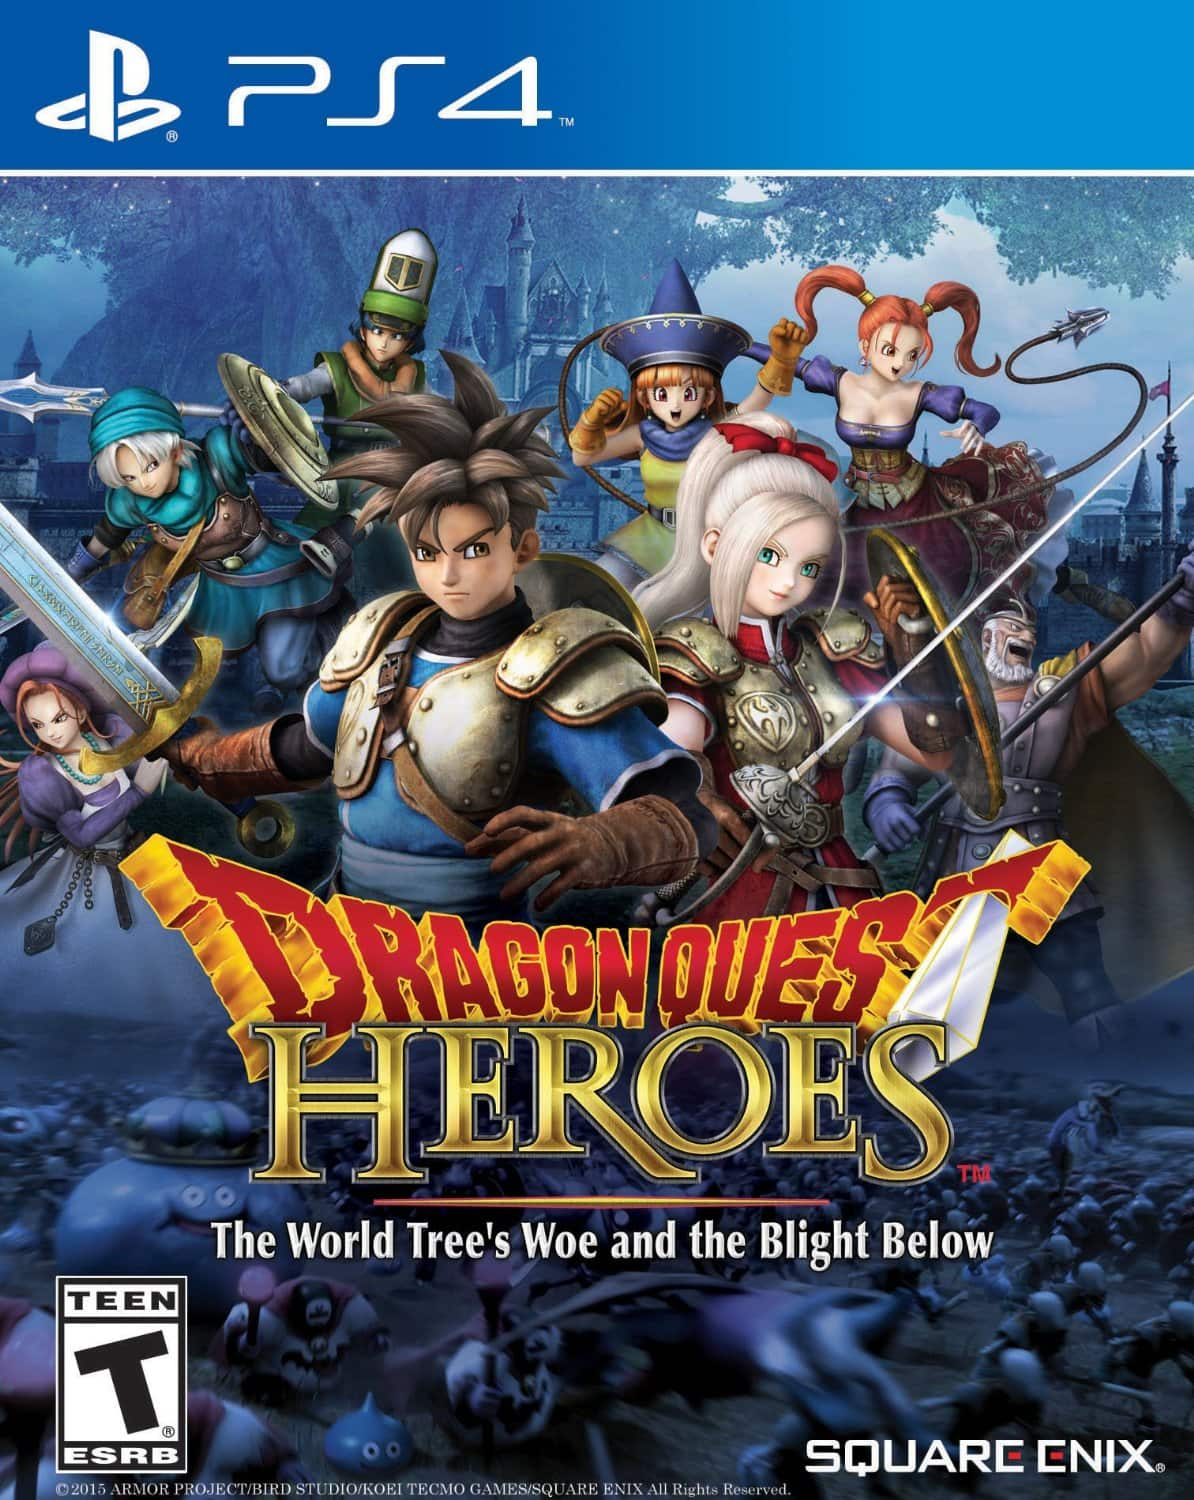 Dragon Quest Heroes: The World Tree's Woe And The Blight Below (PS4 Digital Download Code) $18